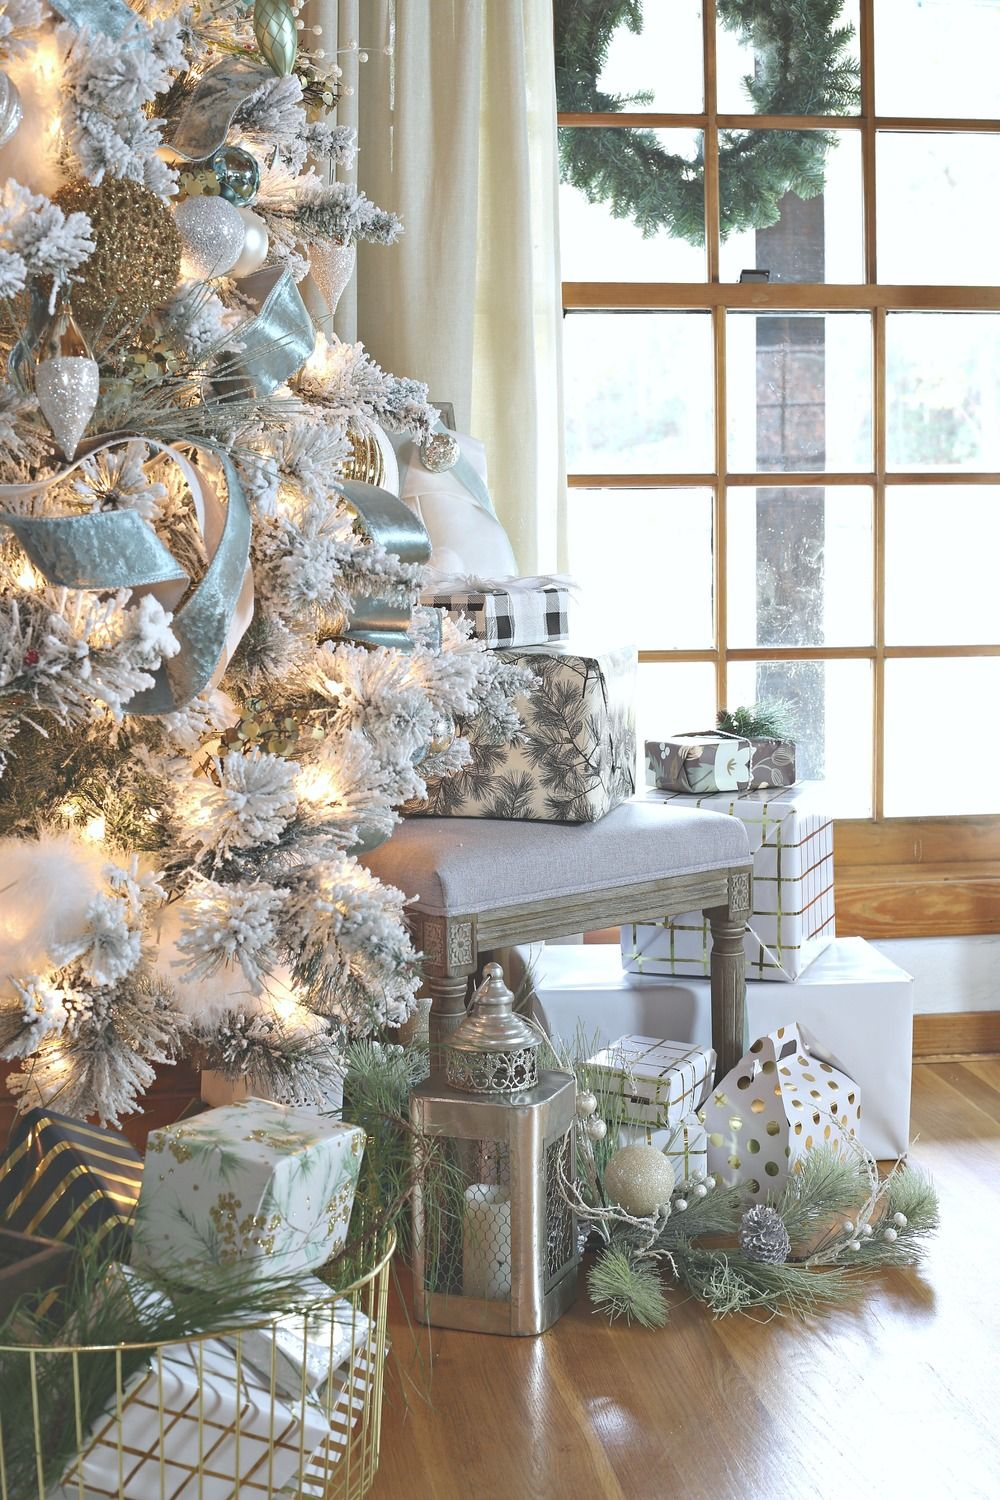 Modern Farmhouse Christmas Home Tour Christmas Tree With Presents Christmas Home Farmhouse Christmas